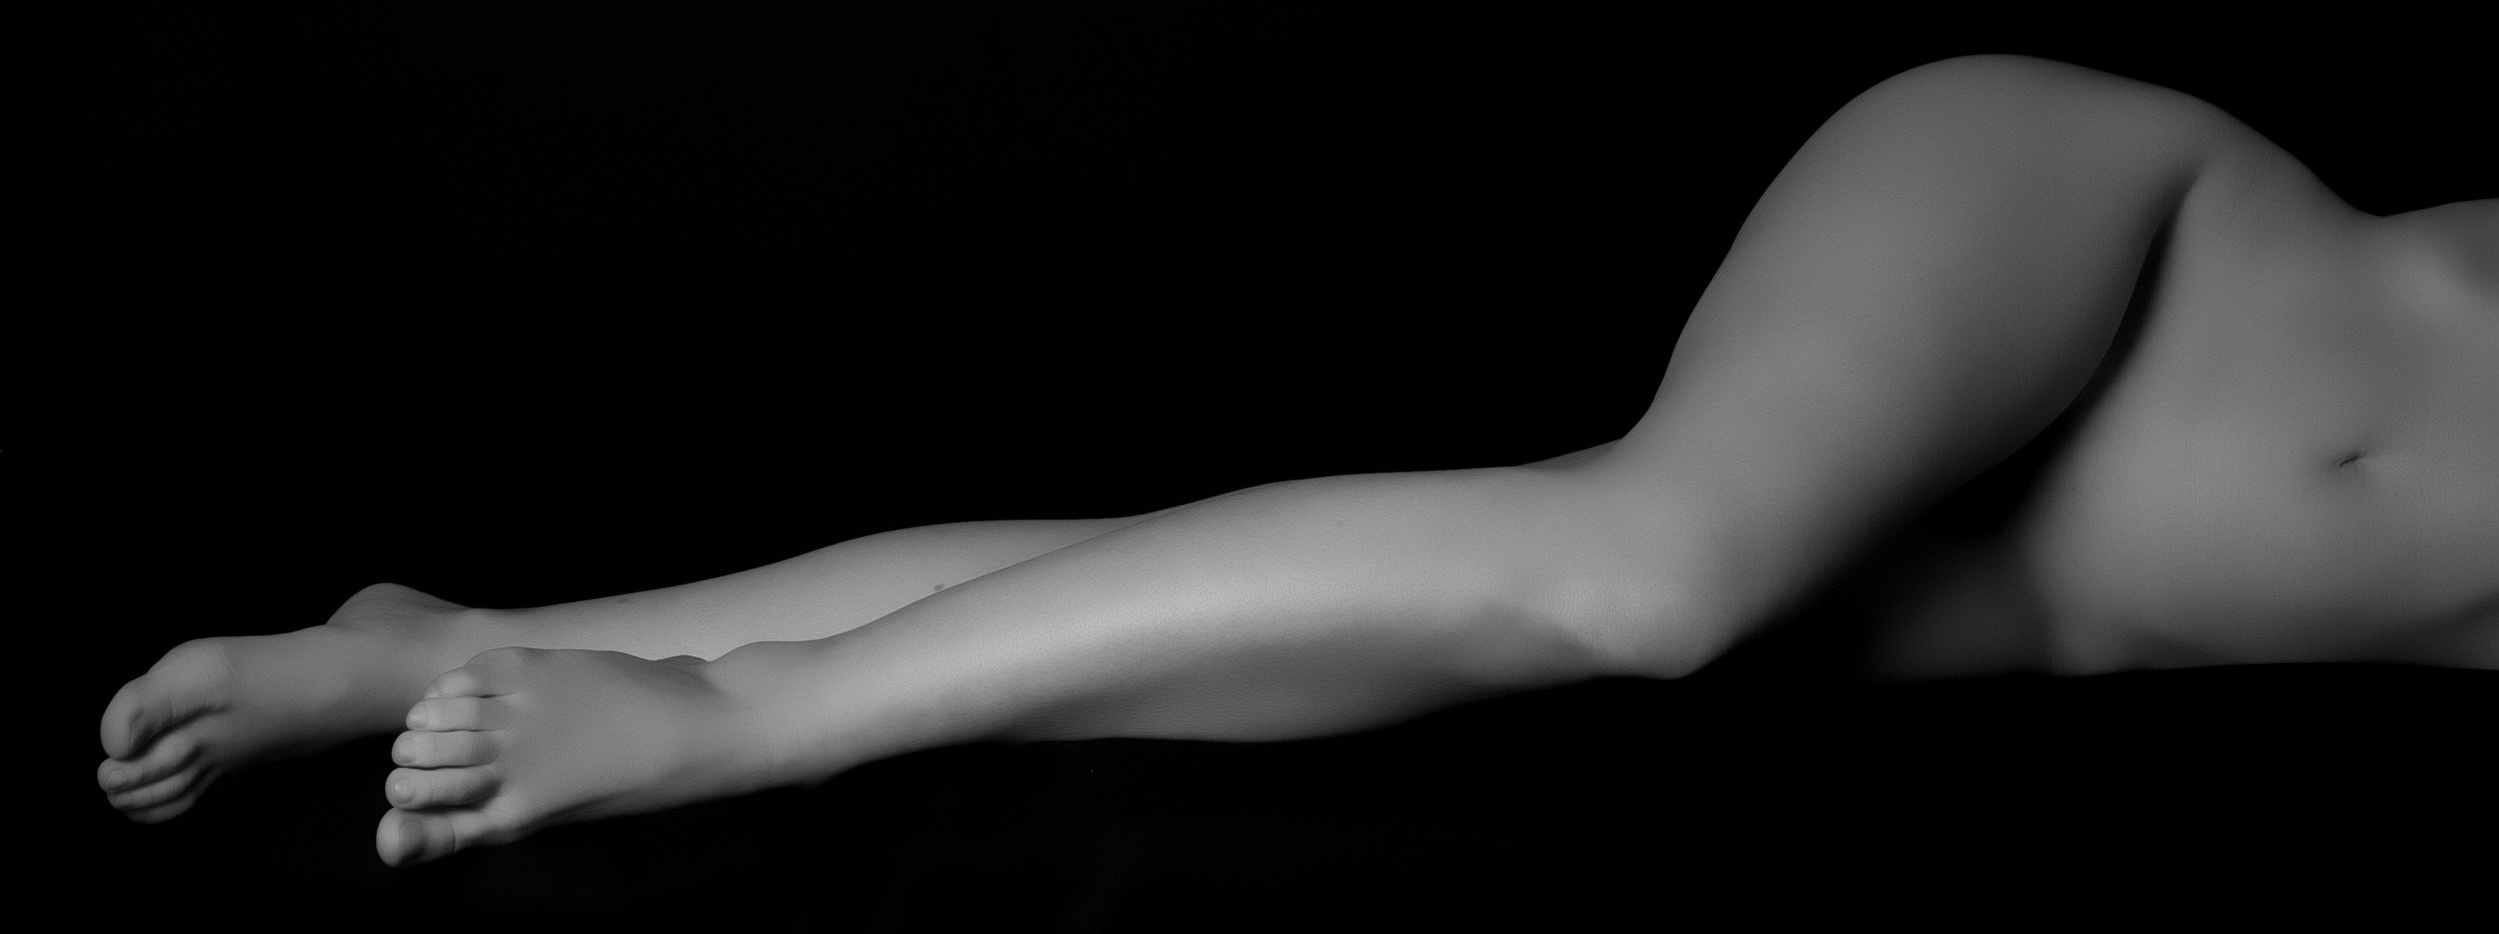 Black and white photo of woman's body from naval down. She is lying on her side and her skin is smooth and hairless after her IPL laser hair removal treatments.